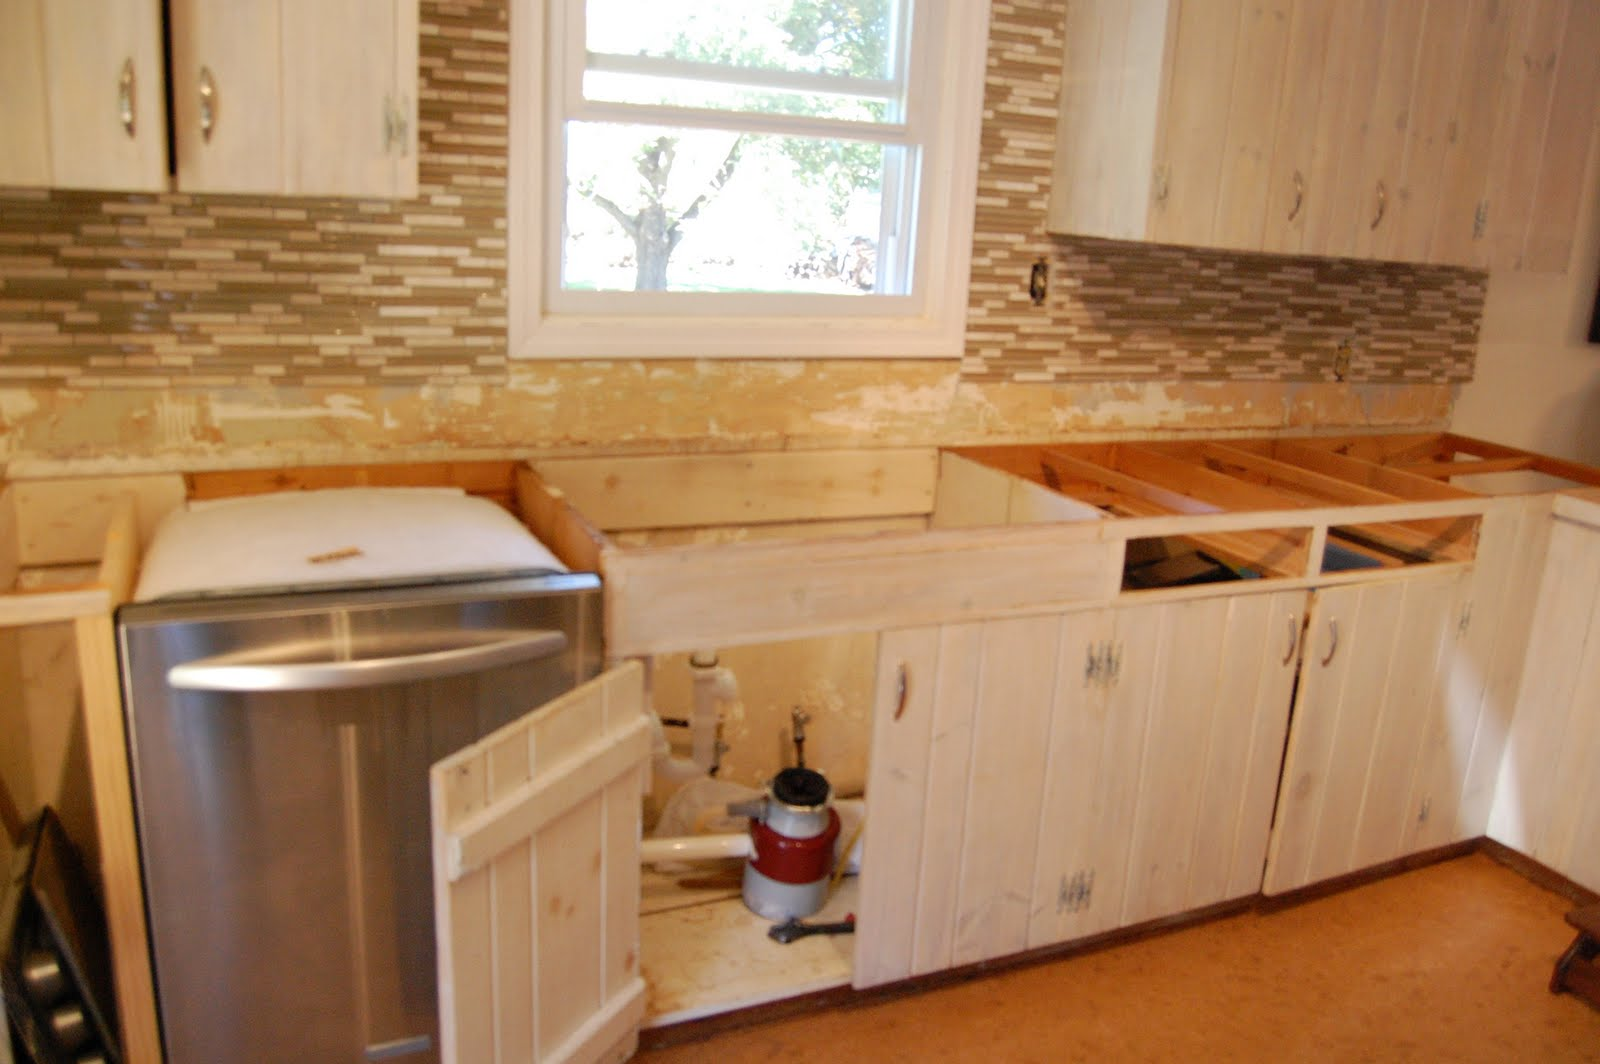 Knotty Pine Kitchen Cabinets Before and After